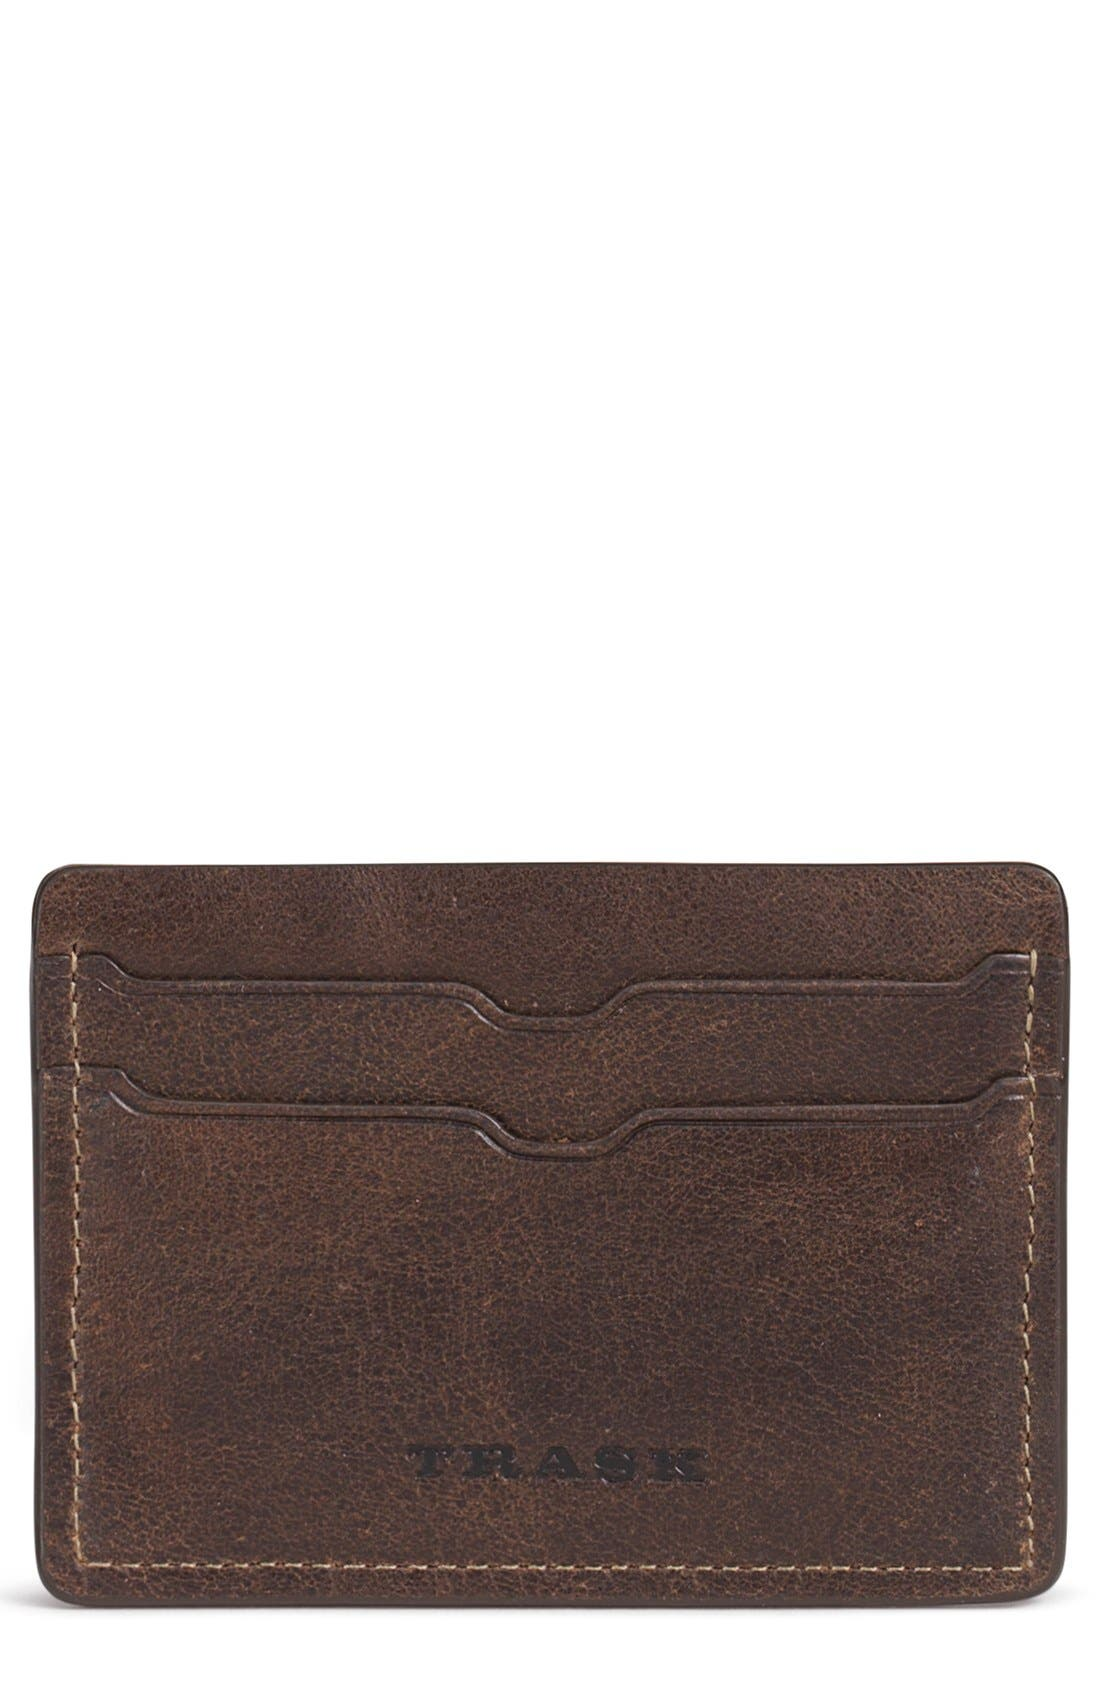 'Jackson' Bison Leather Card Case,                             Main thumbnail 1, color,                             Walnut